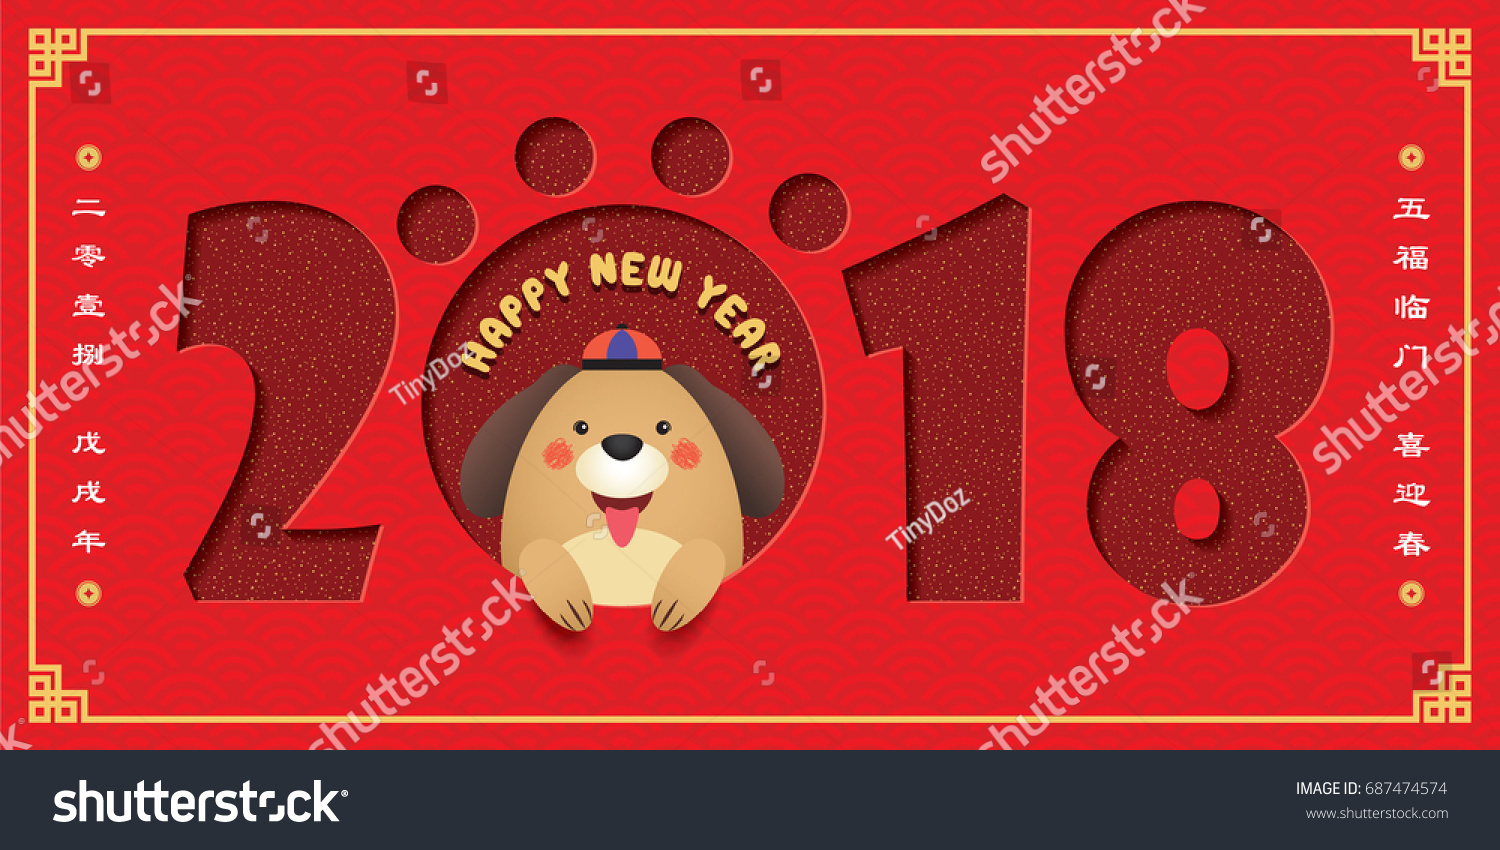 Cute Chinese Cartoon Wallpaper 2018 Chinese New Year Banner Template Stock Vector